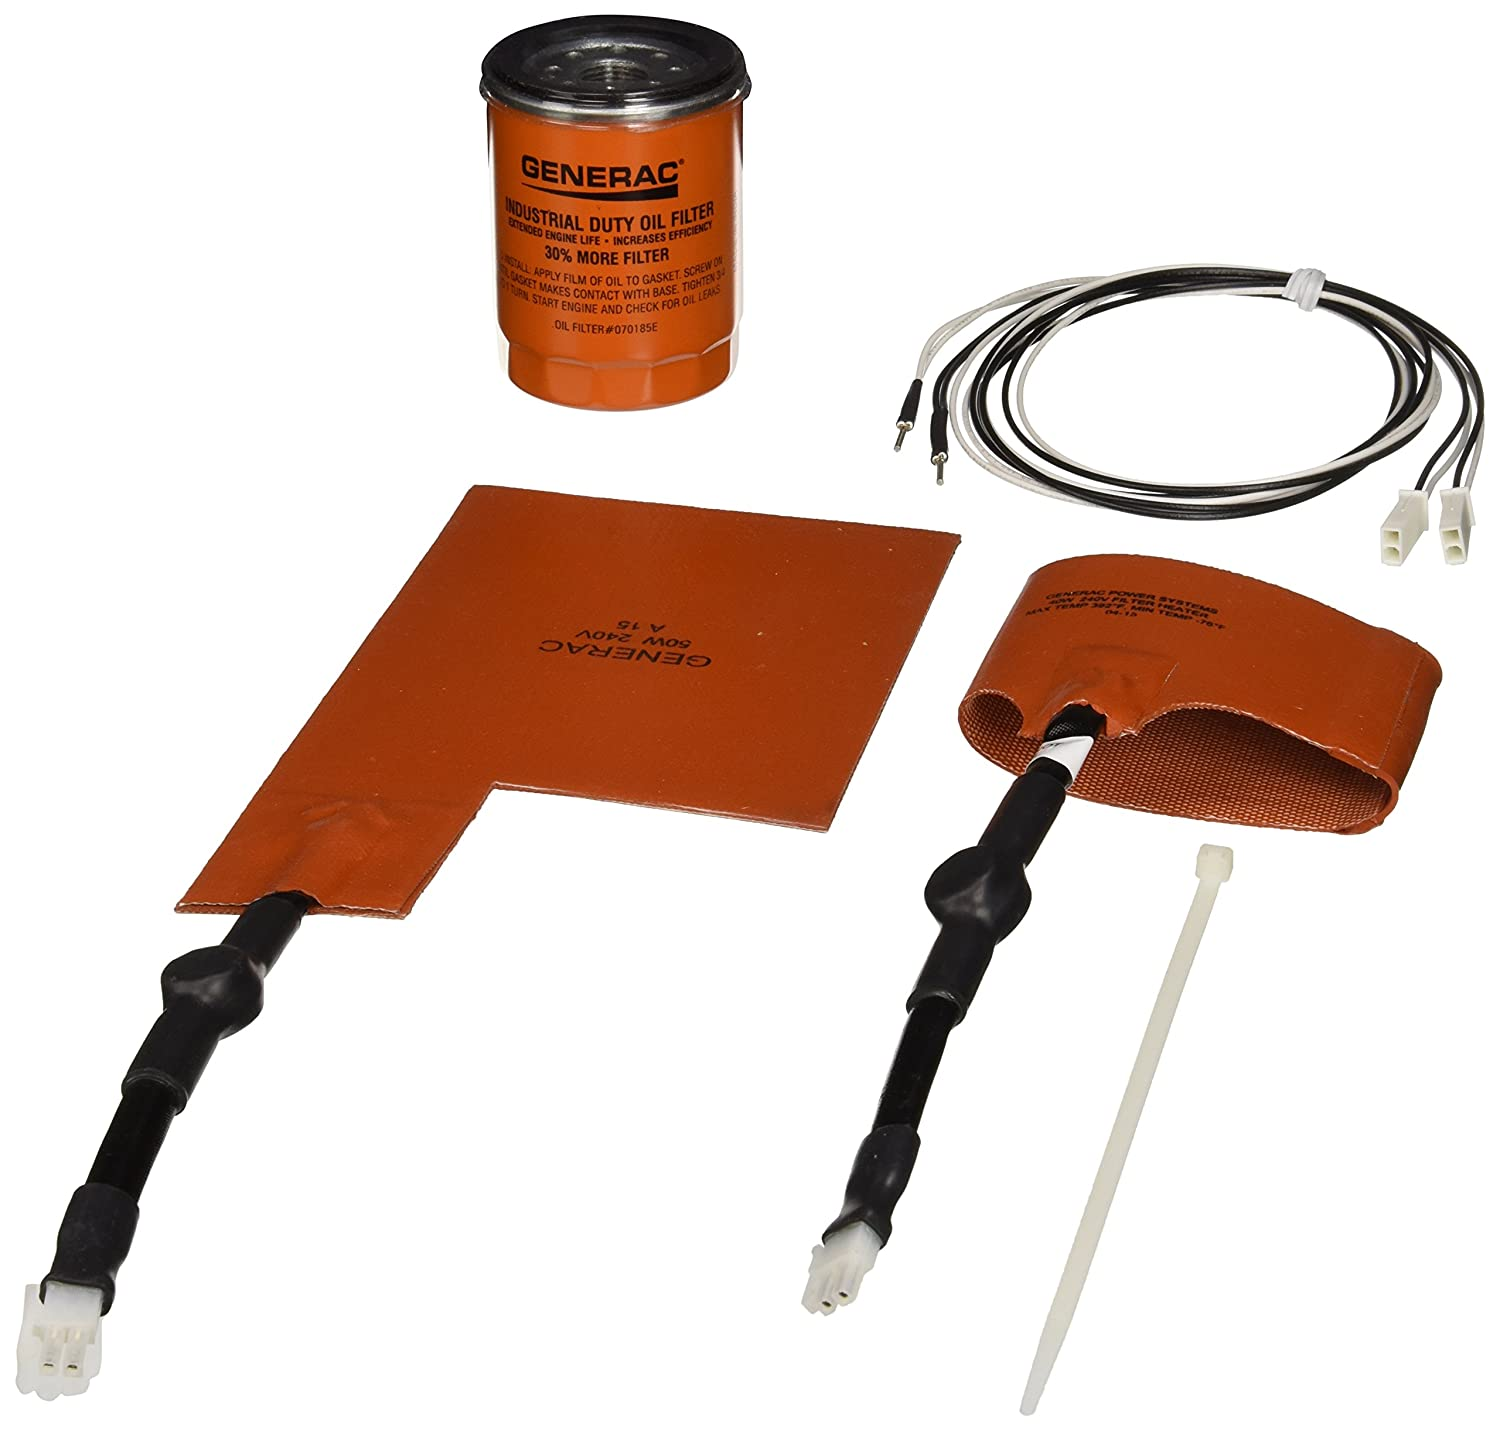 Amazon Generac 6212 Cold Weather Kit for Air Cooled Home